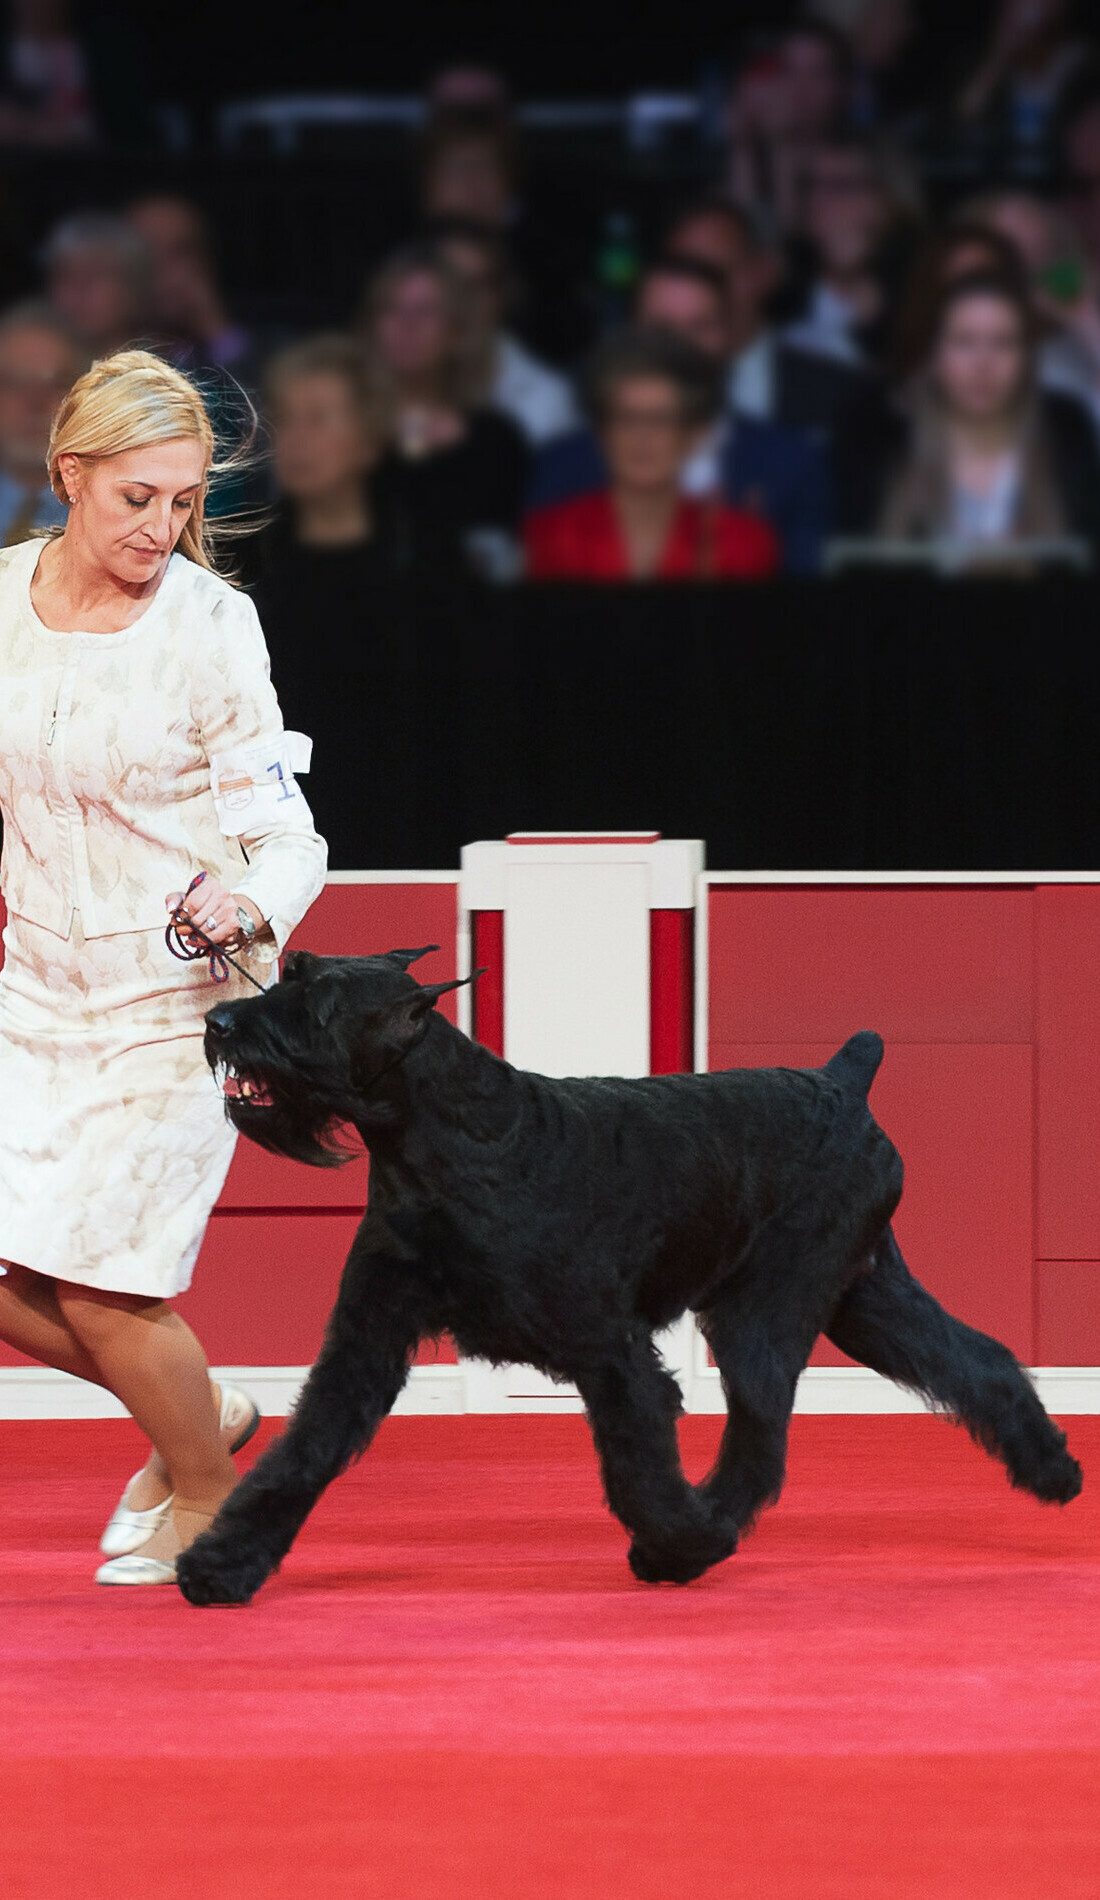 A American Kennel Club live event